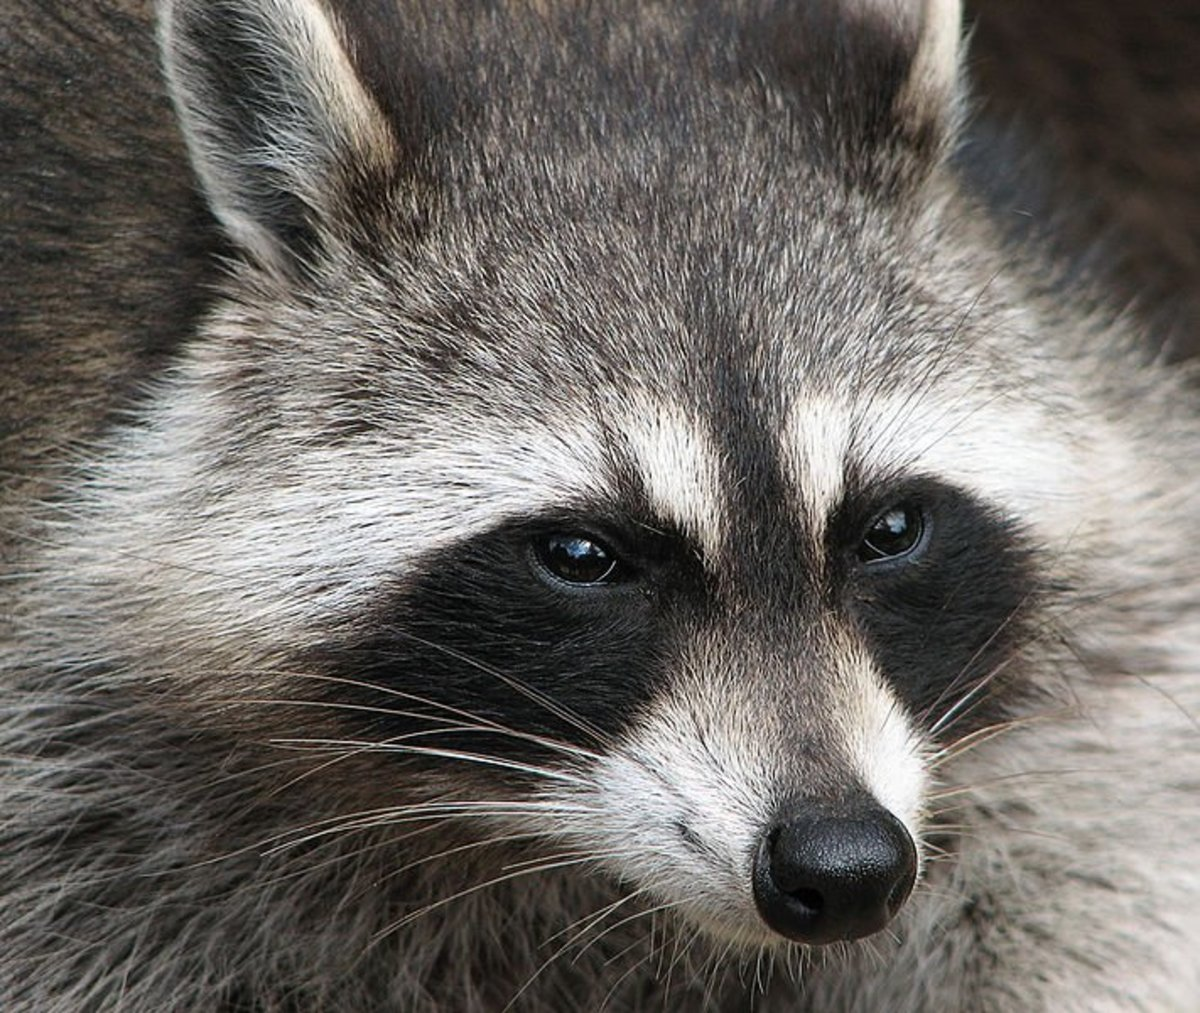 How to get rid of raccoons yourself.